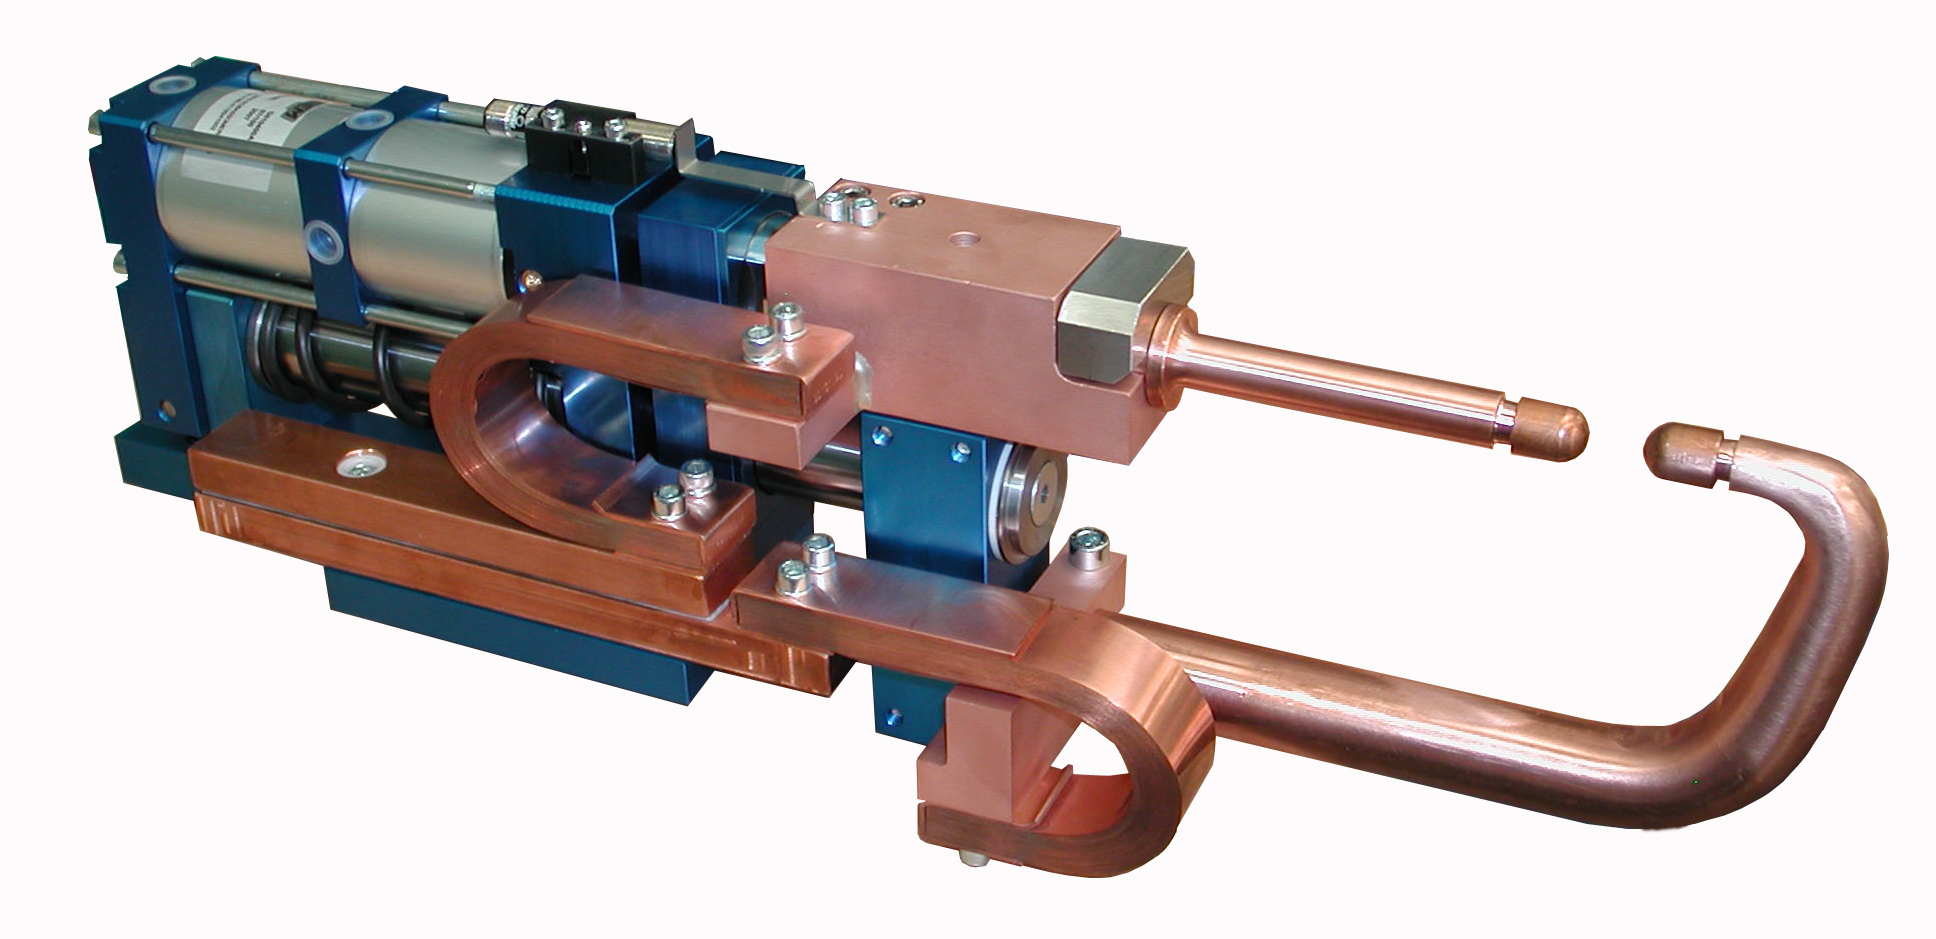 Welding Guns For Robots On Gun Or Cables Welder And Welders Transformer Resistance C Without Stroke 40 Ref G510100